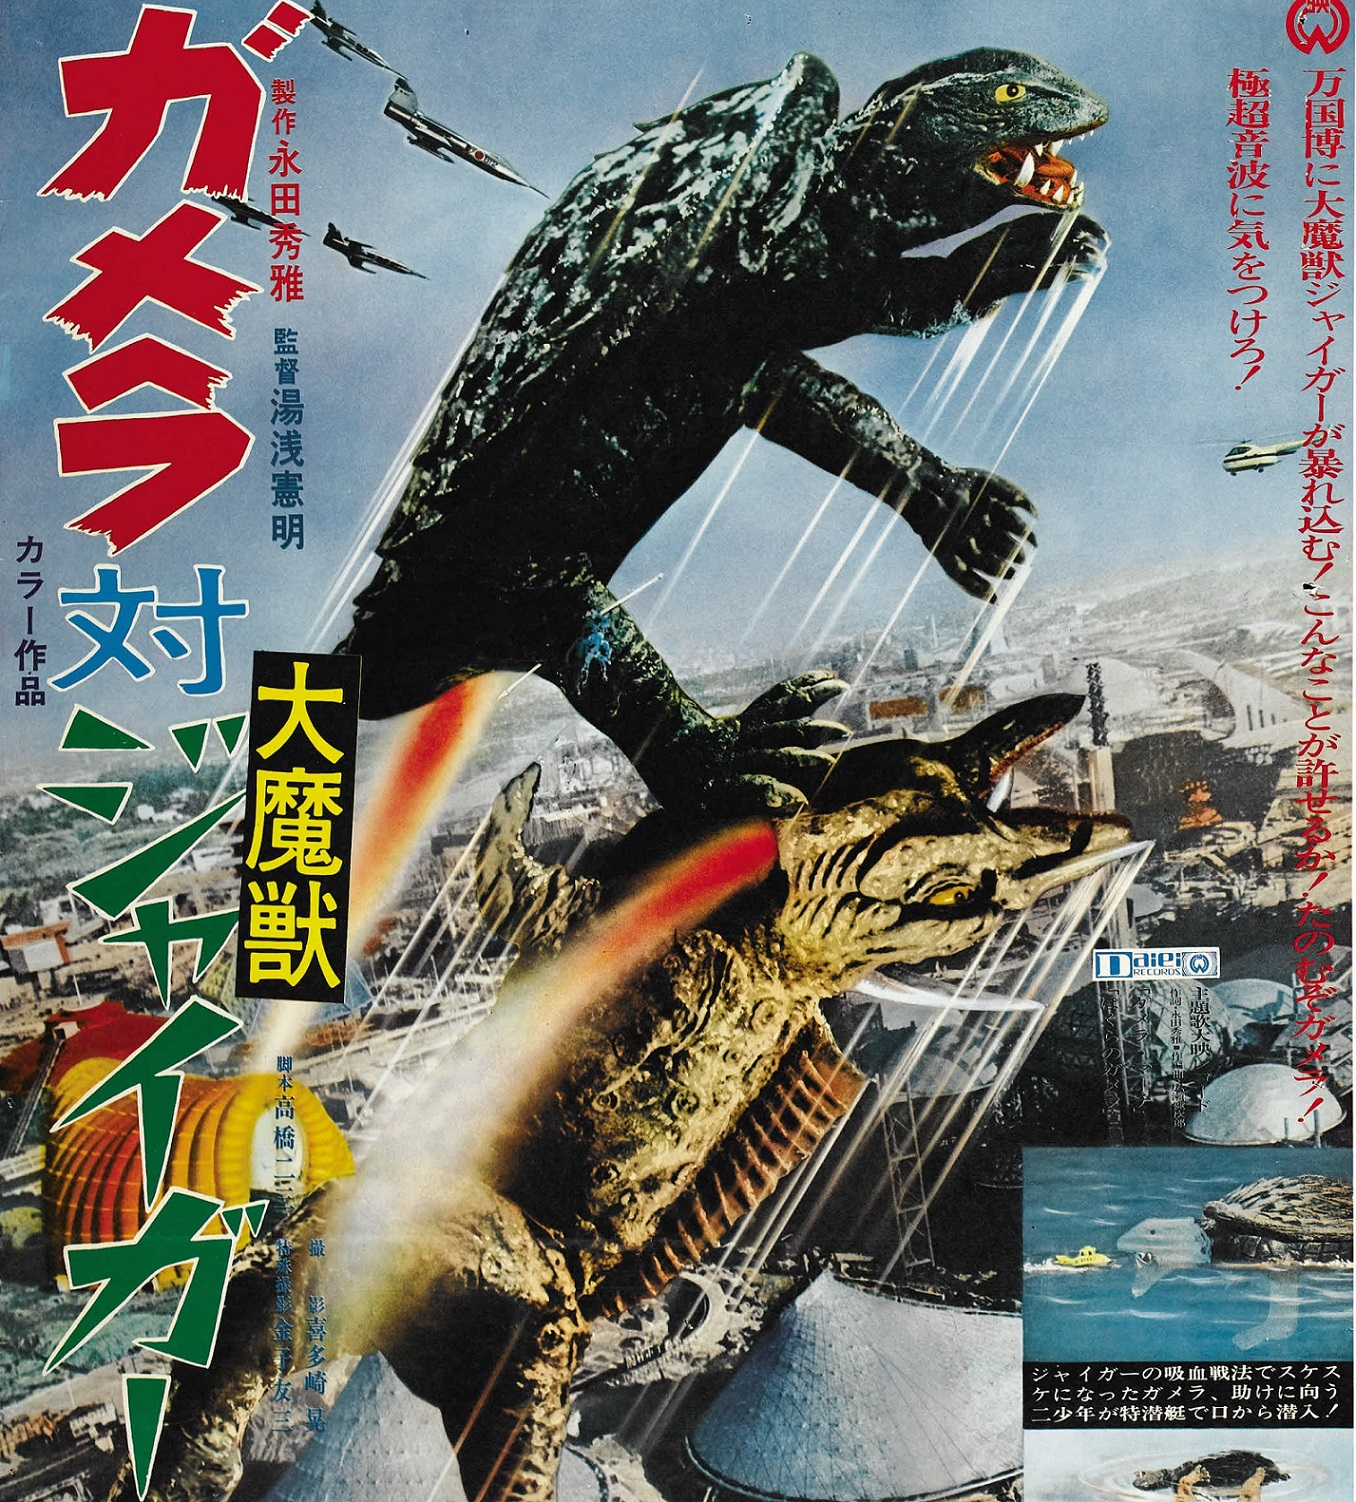 Episode 84 - KaiJune Spectacular! Gamera vs. Jiger